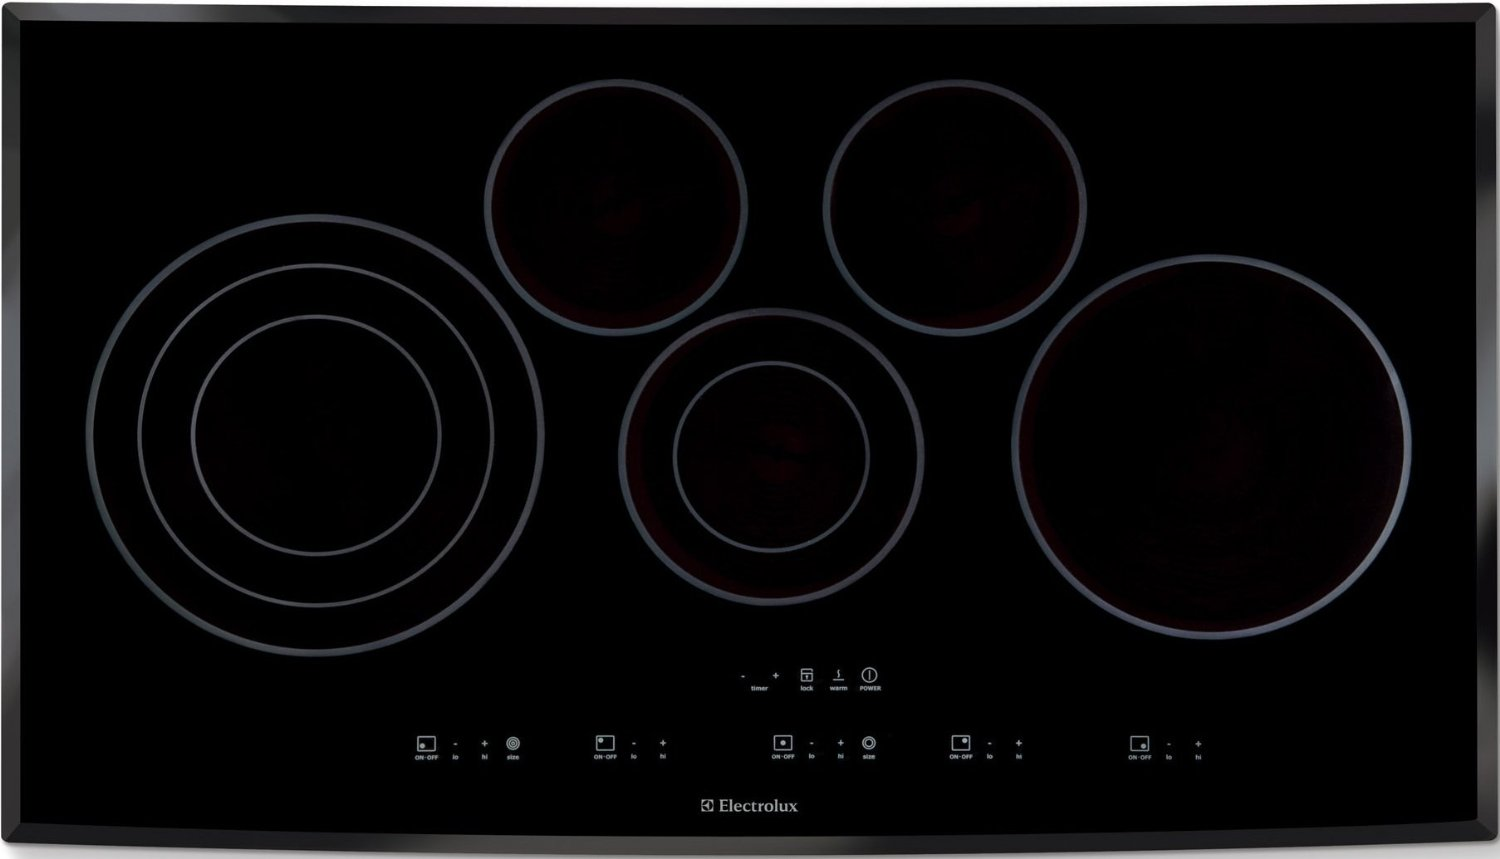 36 Induction Cooktop Reviews